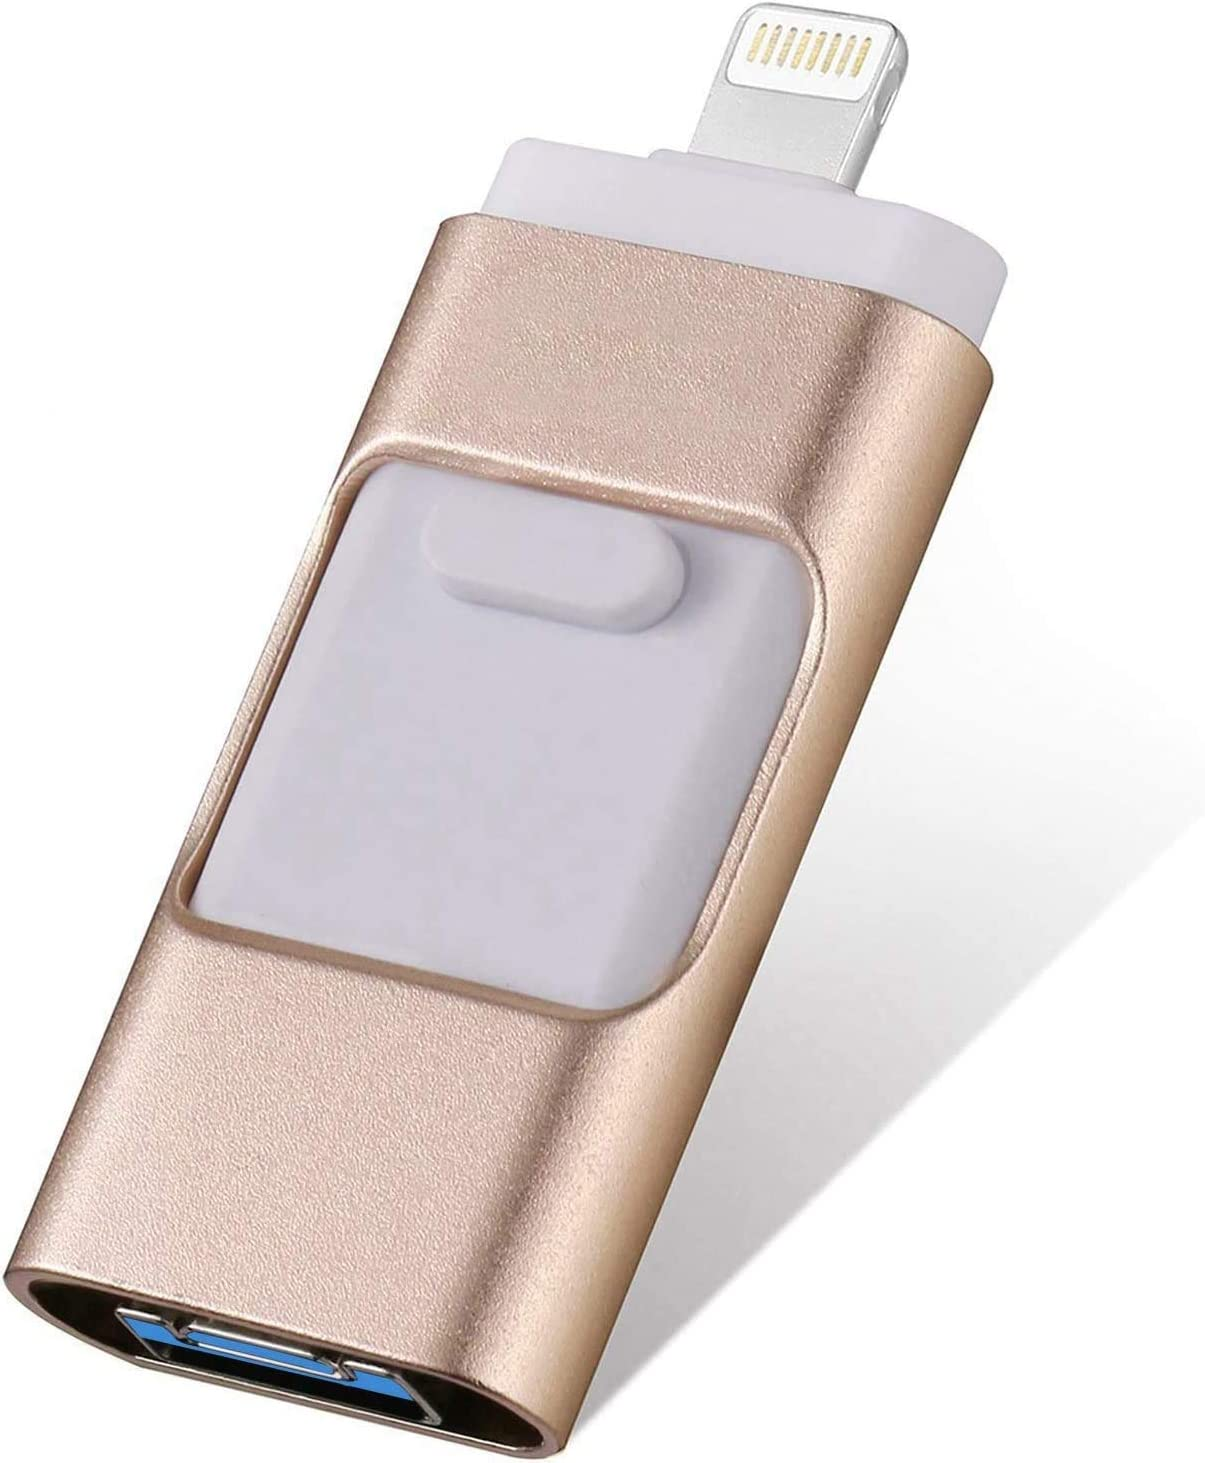 iOS Flash Drive for iPhone 256GB,[3 in 1] iPhone Thumb Drive Memory Stick Storage USB3.0 Photo Picture Stick Jump Drive Mobile for iPhone External Storage/Android/PC/ipad (Gold)